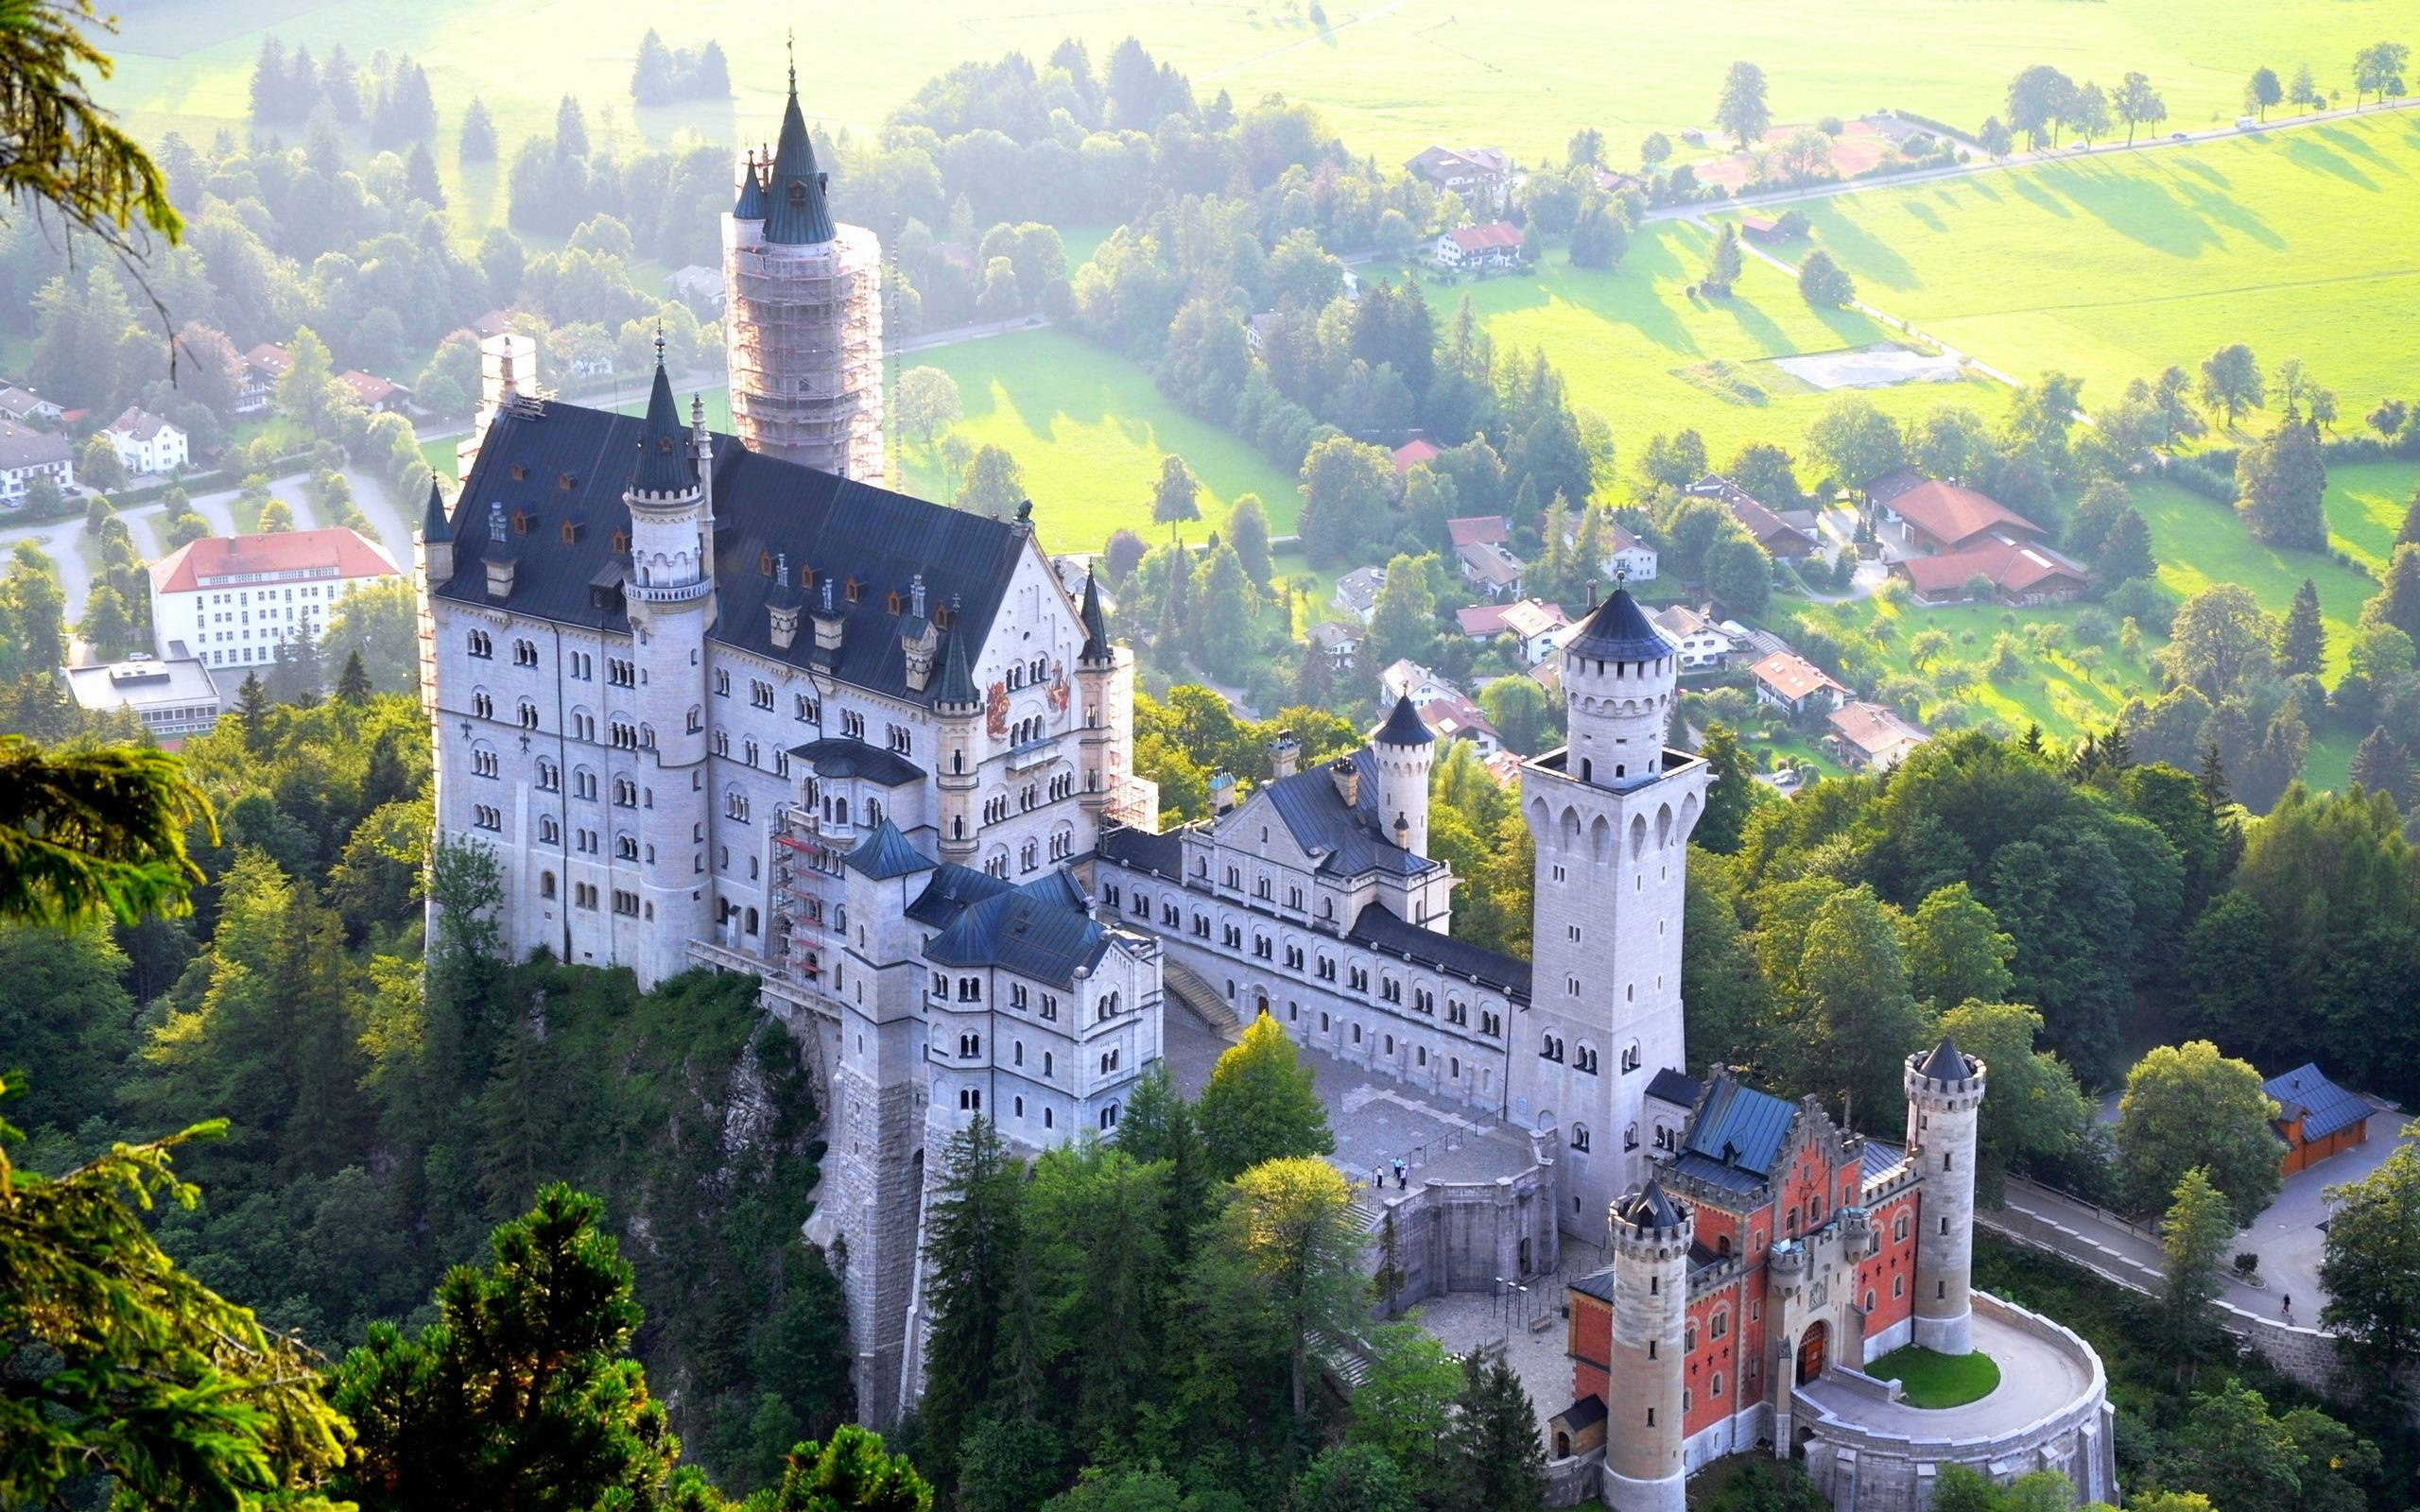 Neuschwanstein Castle Bavaria Germany - FrizeMedia - Digital Marketing Advertising Consulting